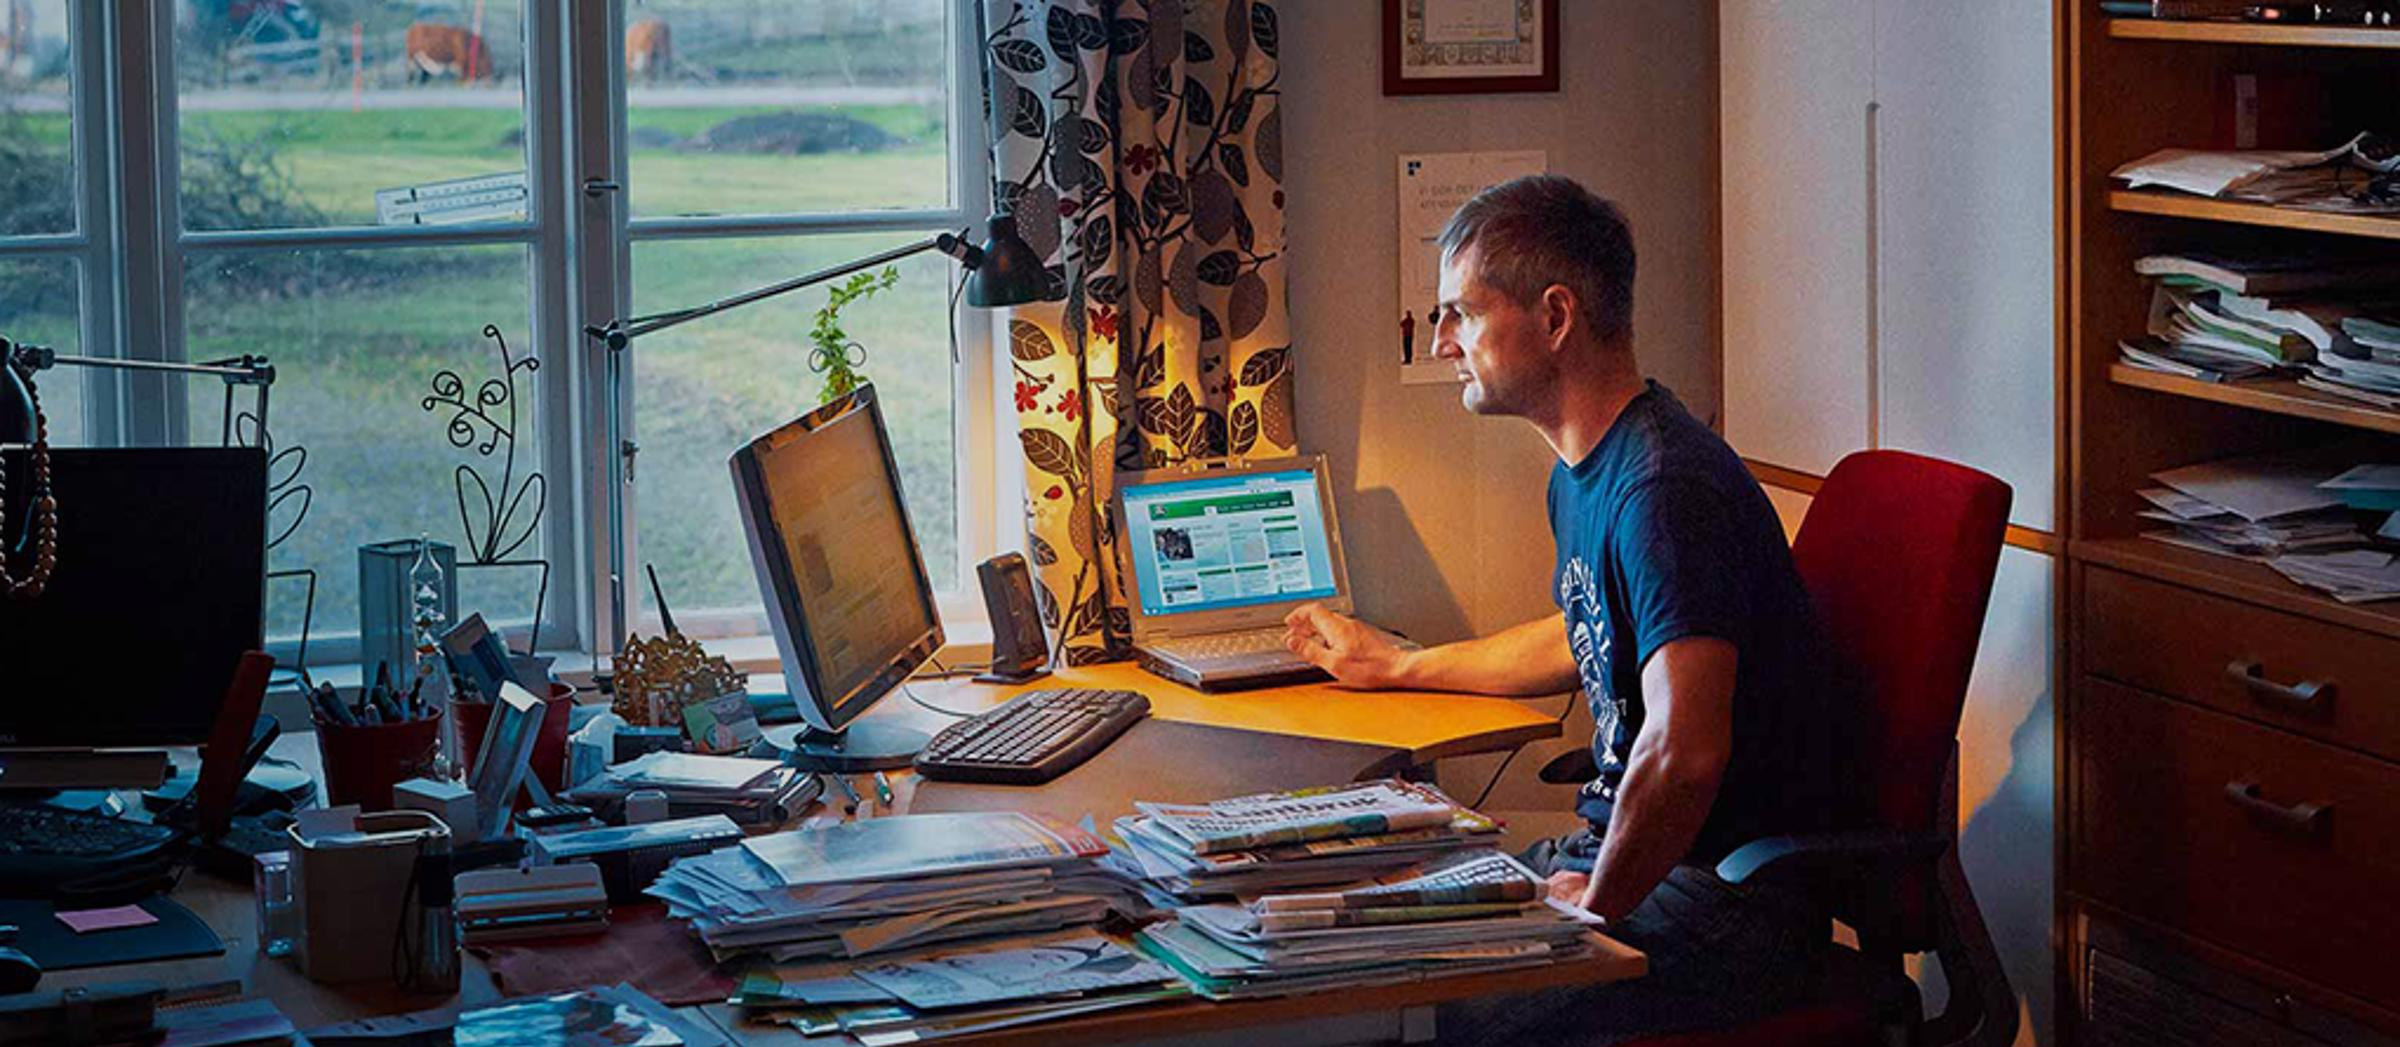 A farmer sat at a desk in his home office